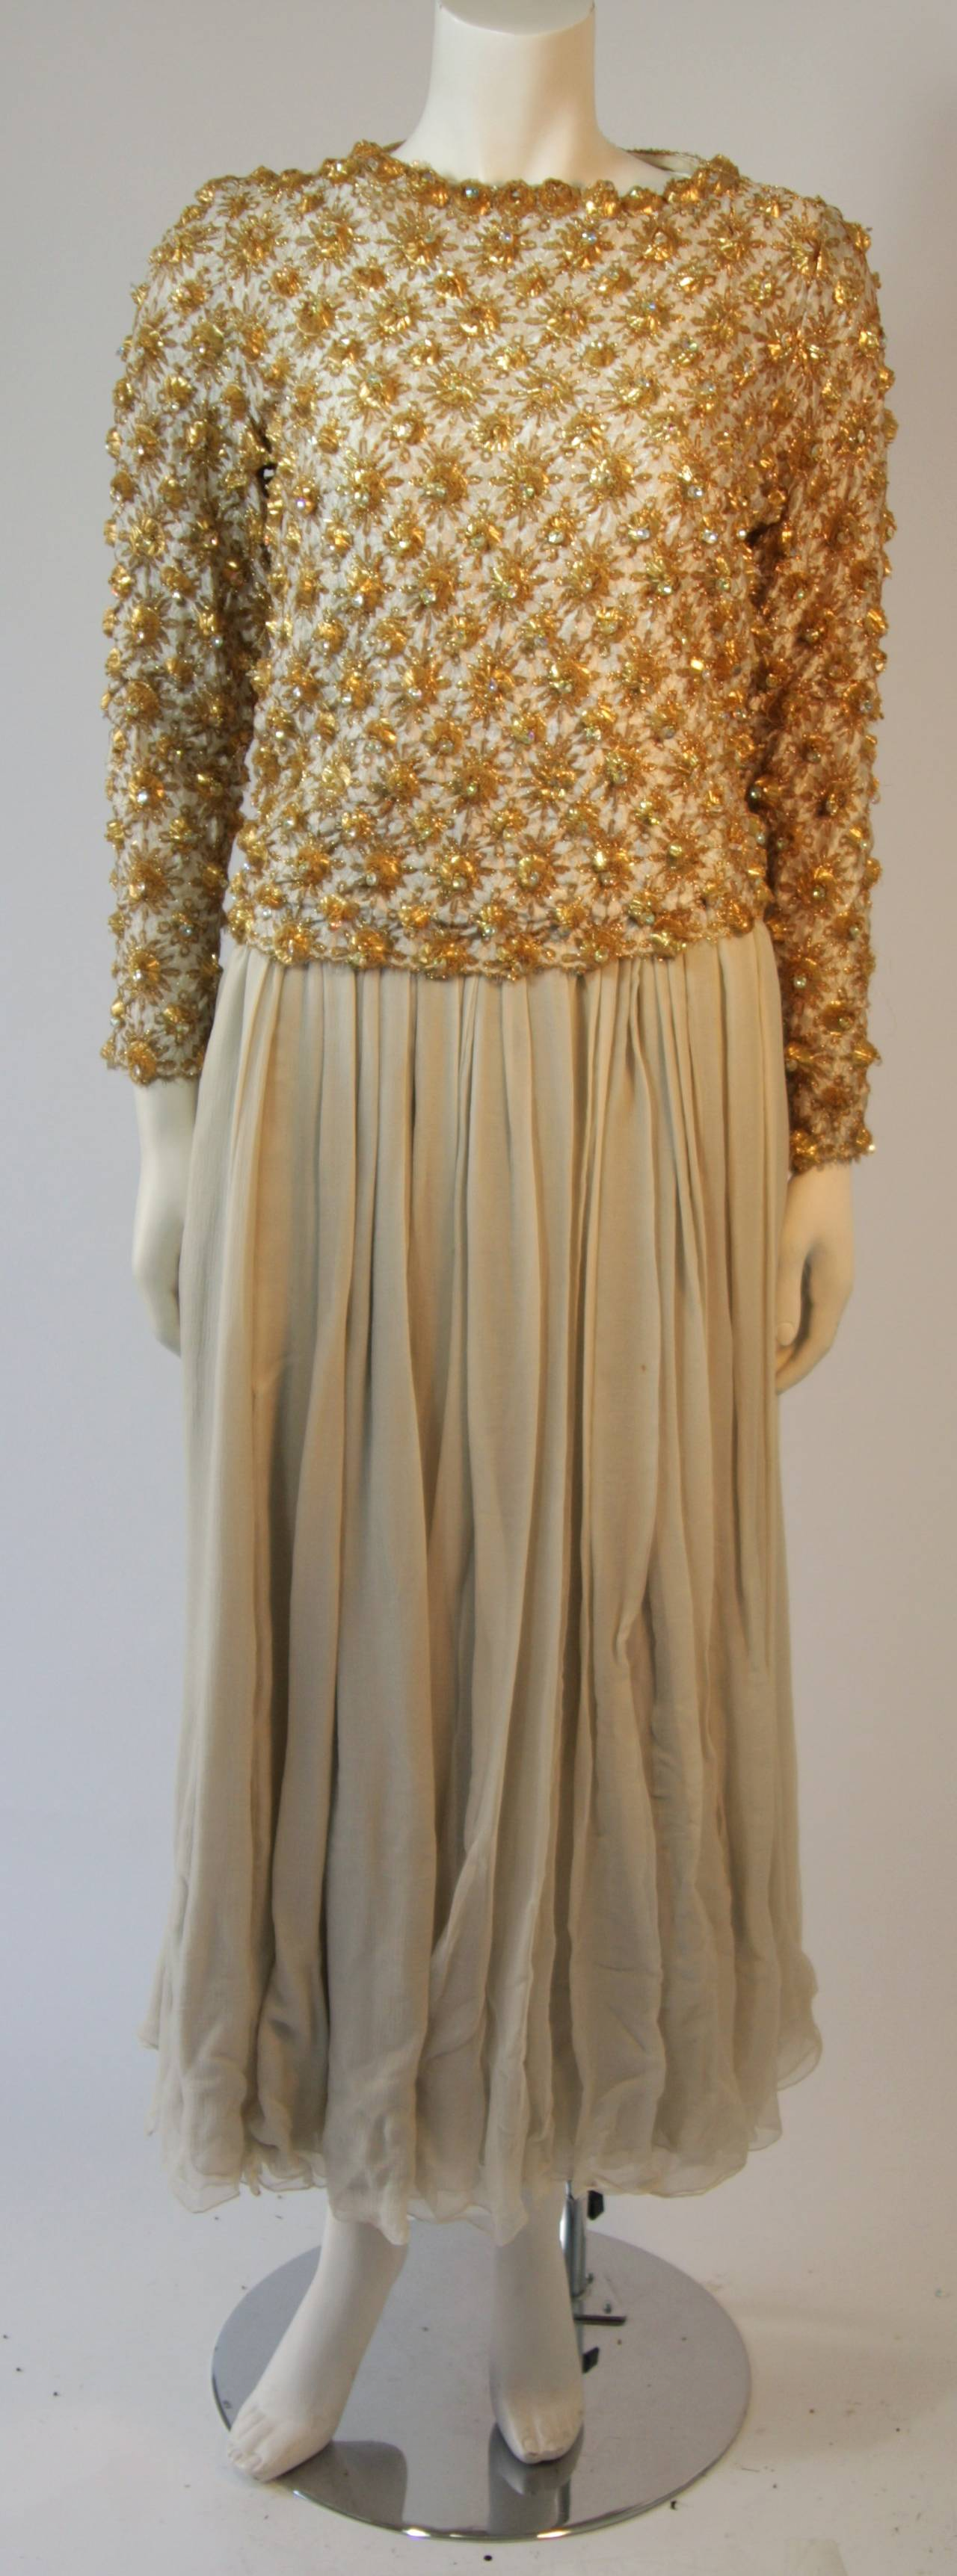 """This vintage gown features a gold embellished shell with a silk dress. There is a zipper closure. The dress is sold """"As Is"""".   Measures (Approximately) Shell Length: 19.75"""" Sleeve: 23.5"""" Shoulder to shoulder: 15 1/8"""" Bust: 36"""" Waist:"""